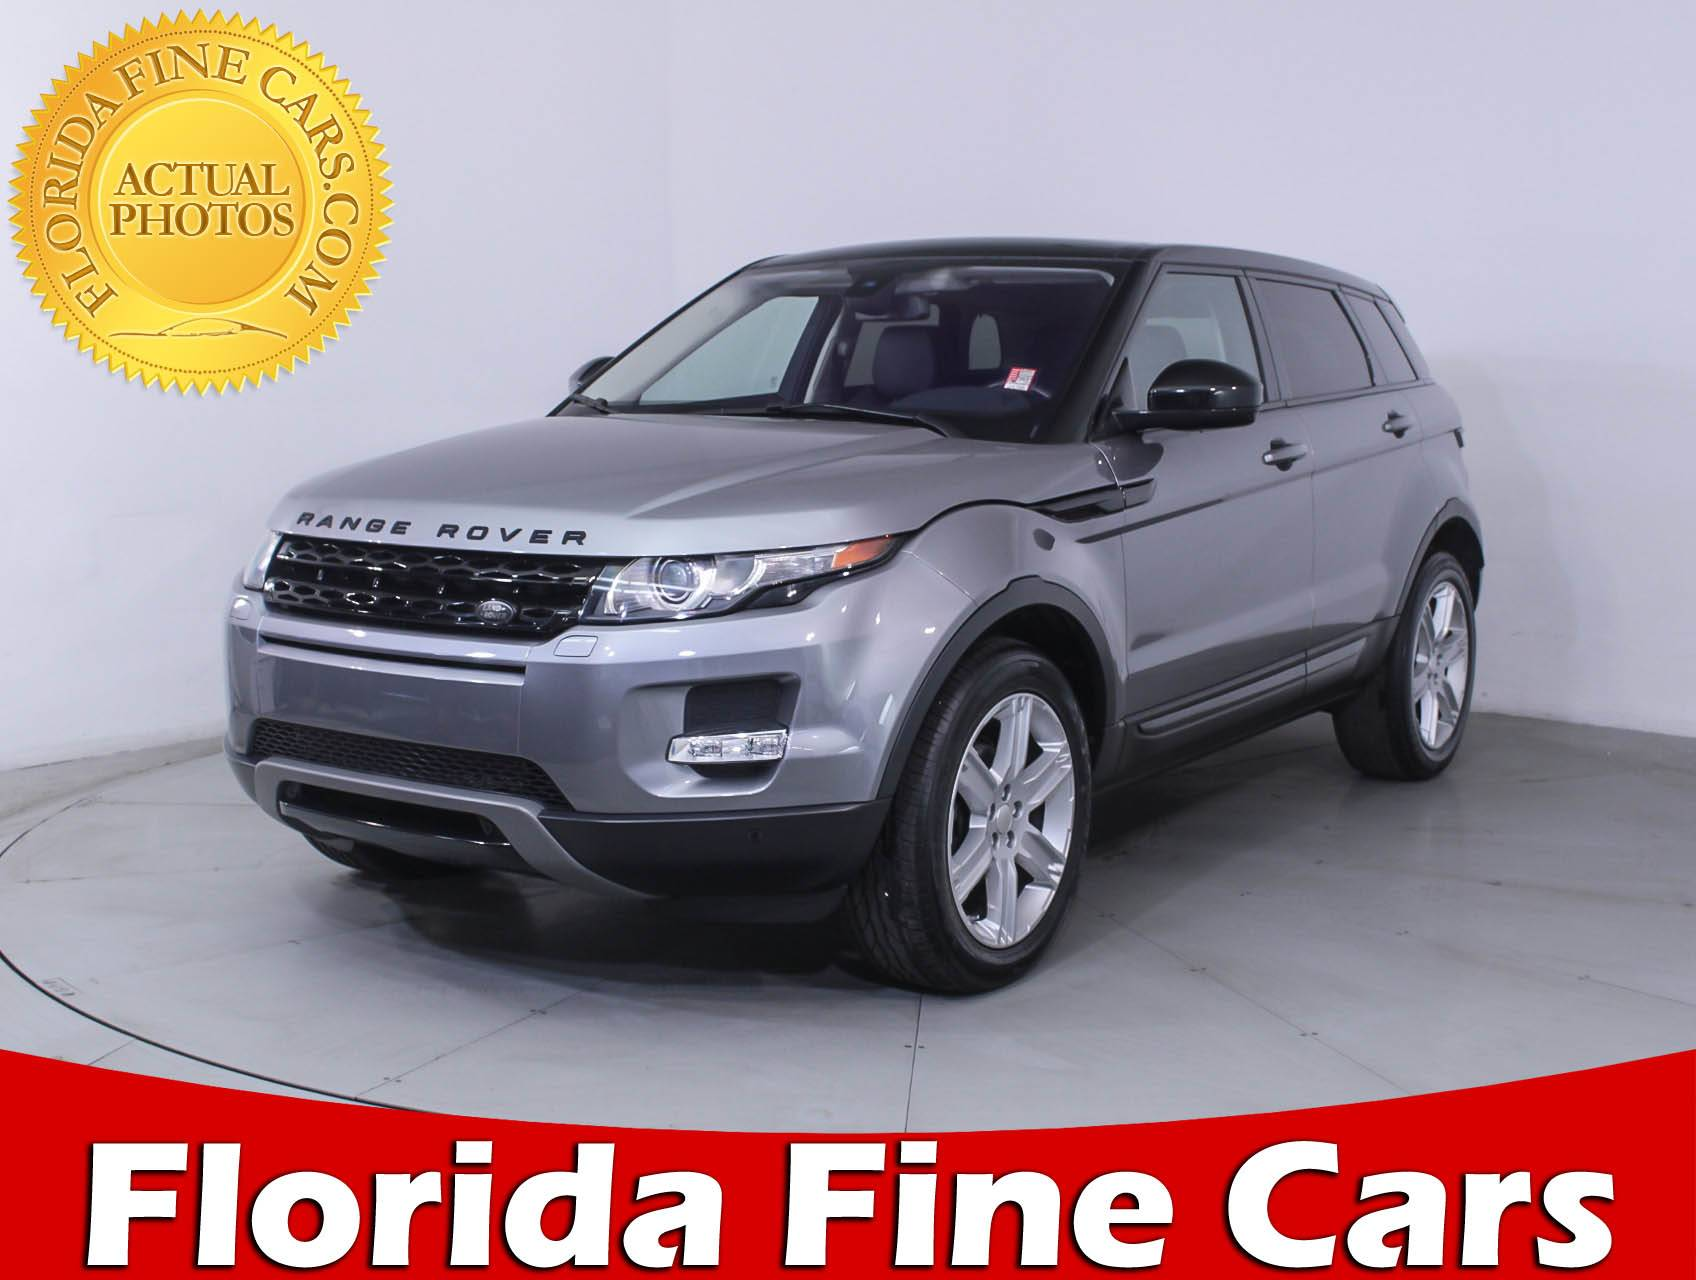 50 Best Used Land Rover Range Rover Evoque for Sale Savings from